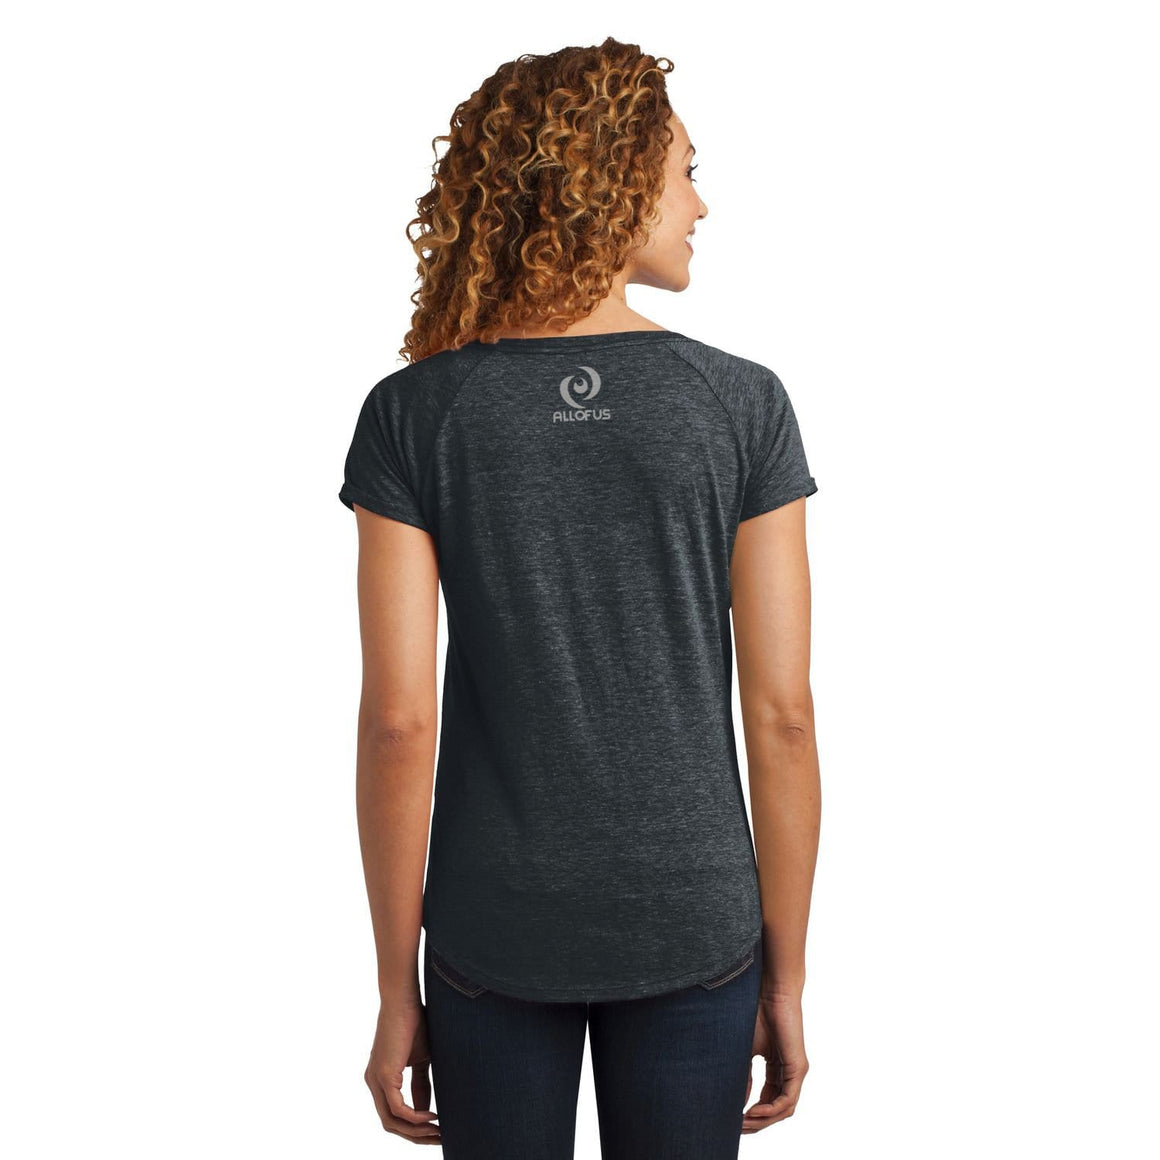 Womens All of Us Charcoal Heather Tri-Blend Scoop Tee T-shirt